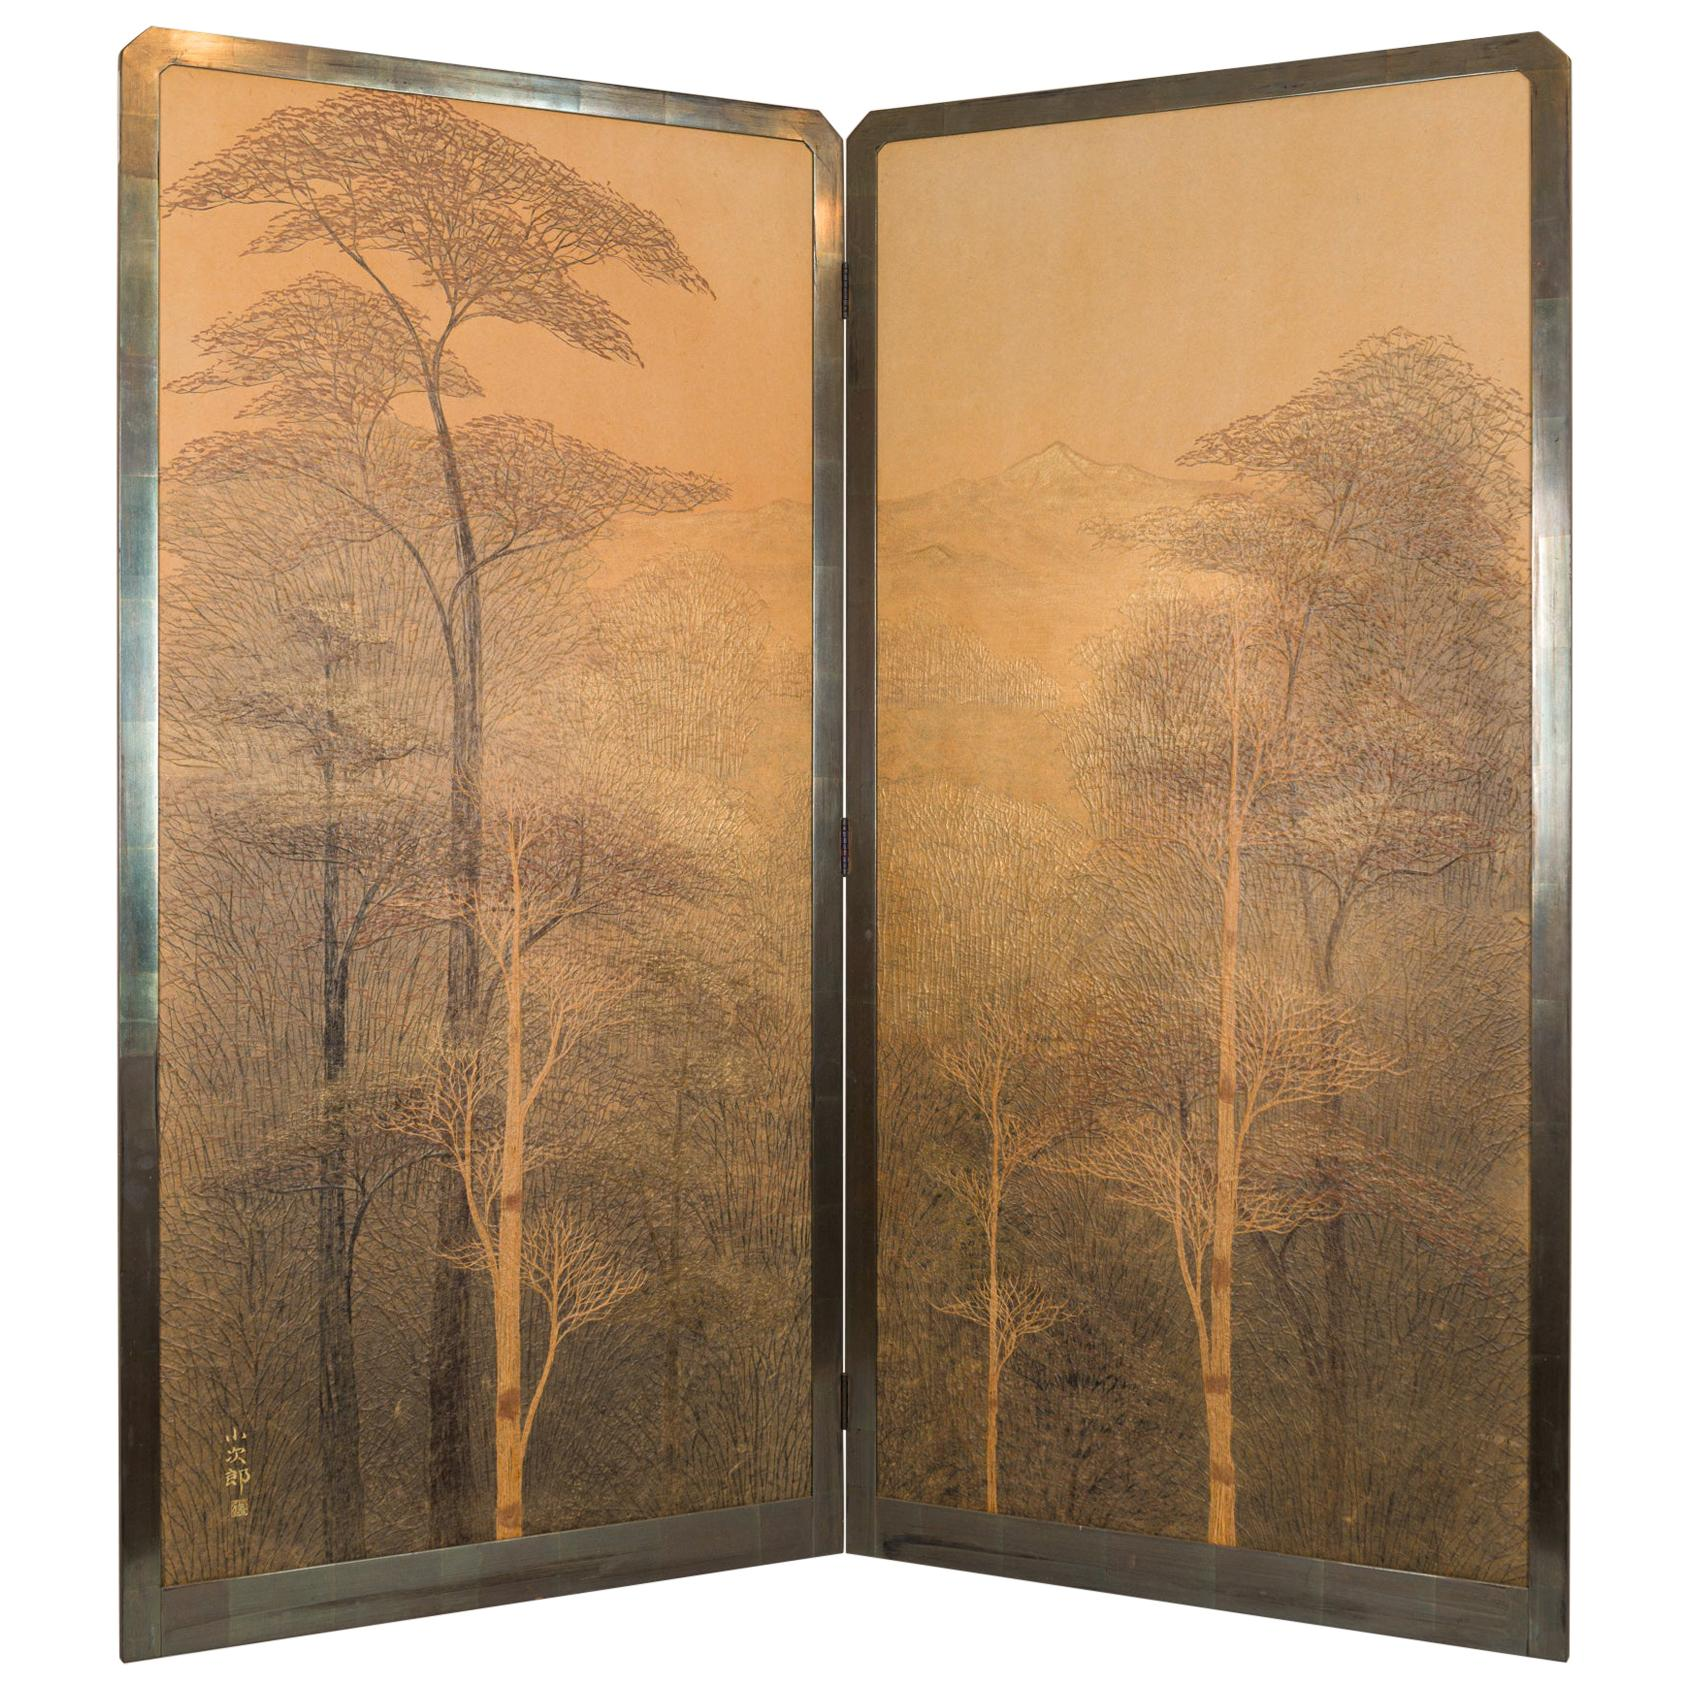 Japanese Two-Panel Screen, Autumn Forest, Rare Obara Paper Art Screen